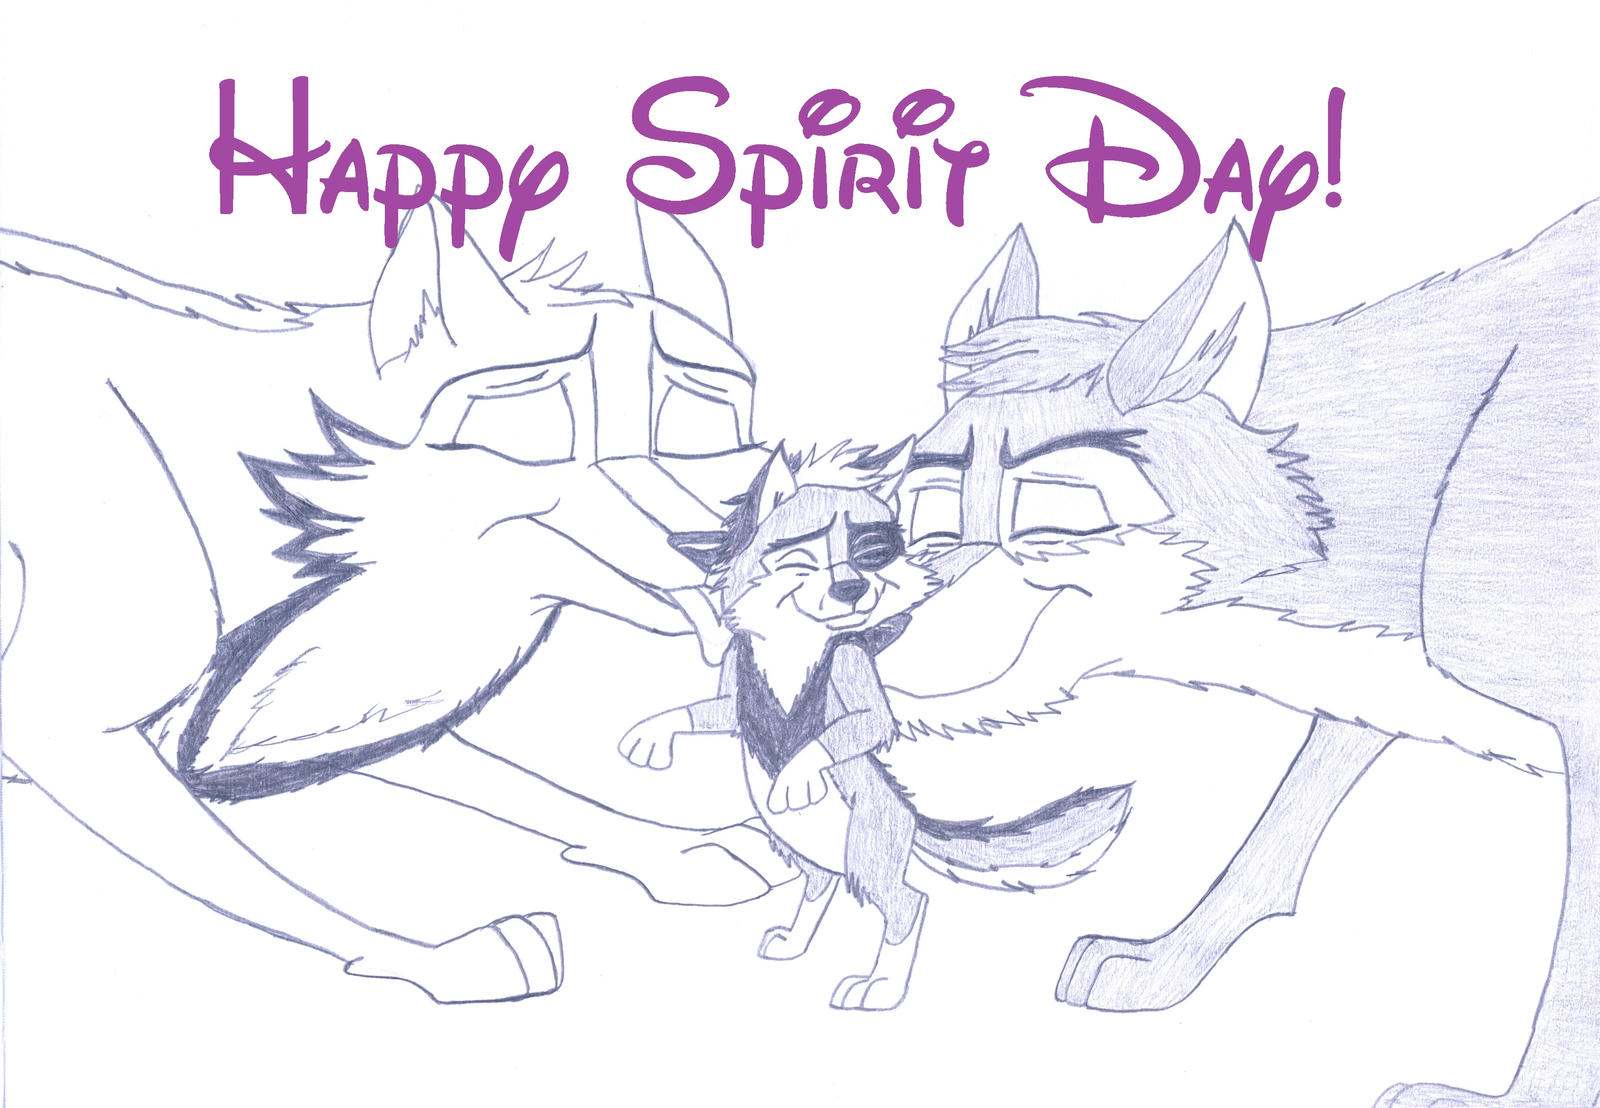 Kitara the wolfhound - Happy Spirit Day! by MortenEng21